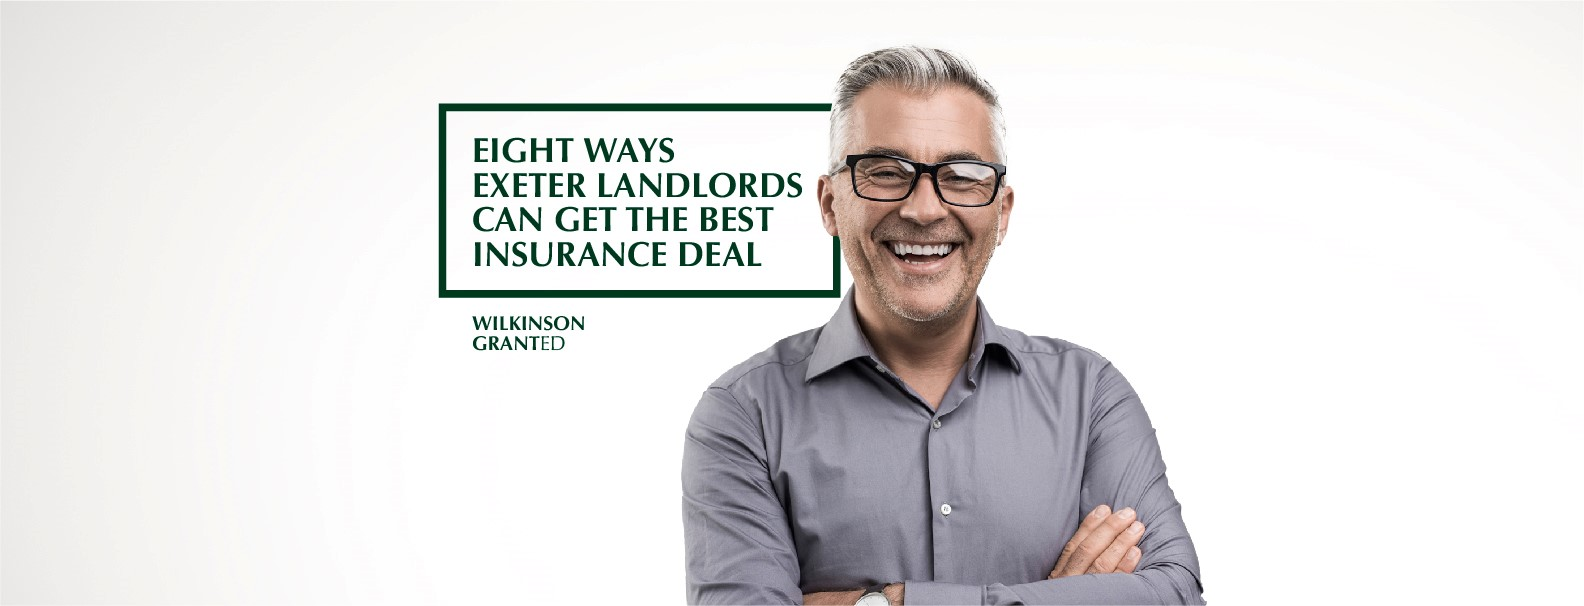 Eight Ways Exeter Landlords Can Get the Best Insurance Deal